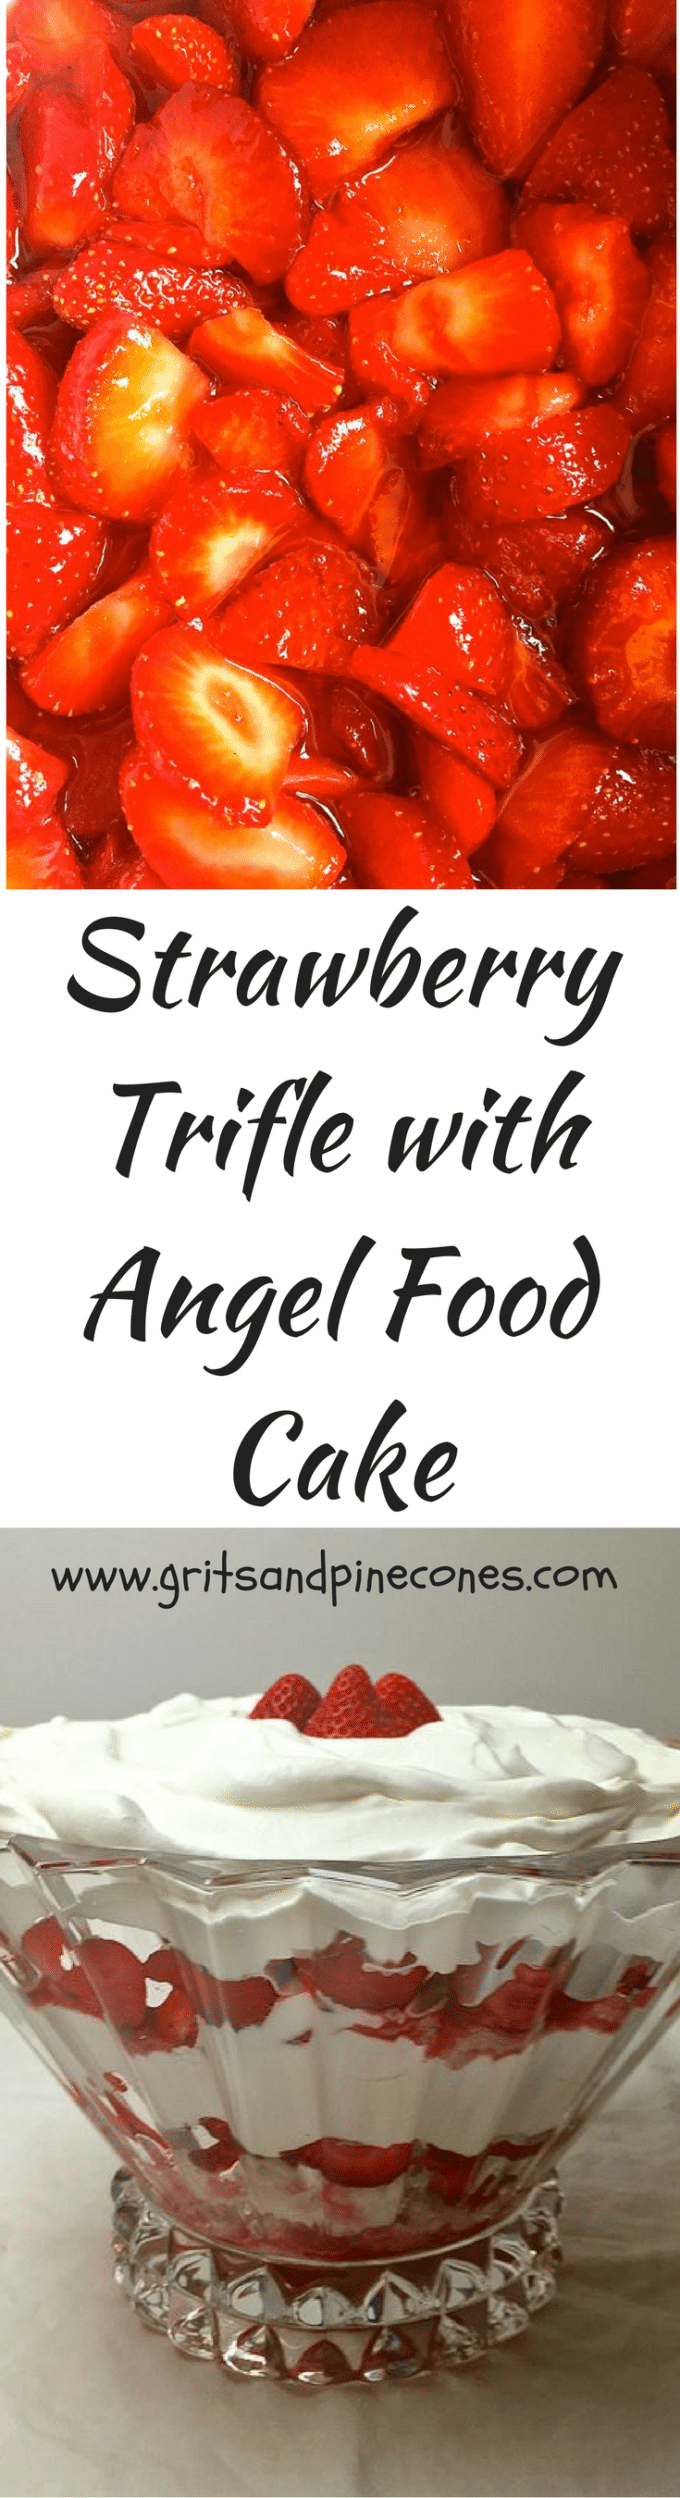 Strawberry Trifle with Angel Food Cake with fresh strawberries, whipped cream, and heavenly angel food cake is easy, elegant and delicious!